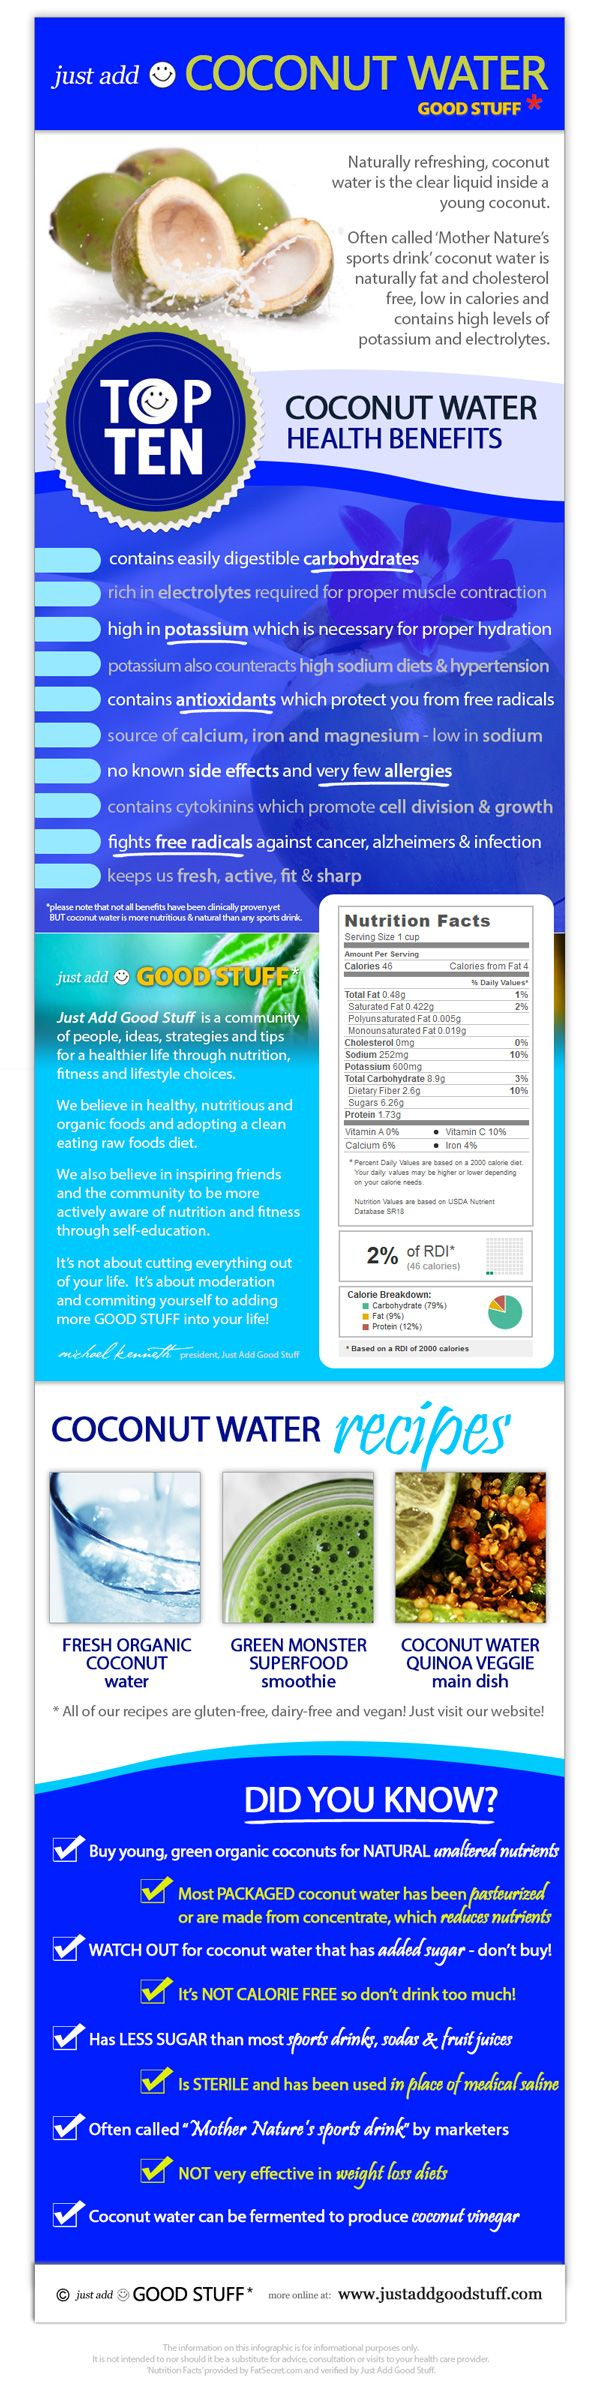 """Coconut Water infographic > everything you need to know about coconut water including health benefits, nutritional data, interesting facts and recipes 